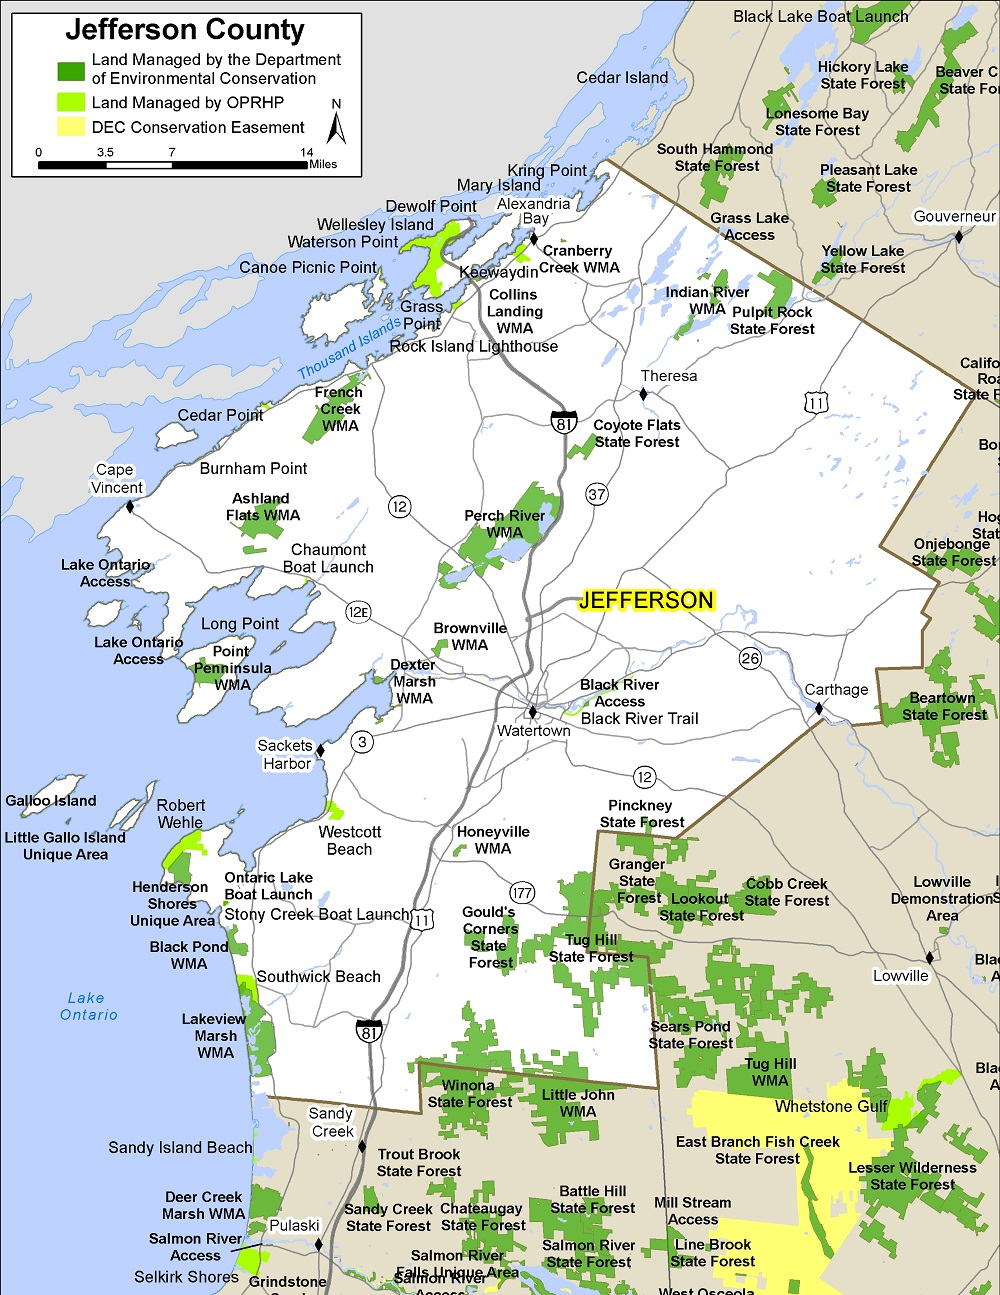 Jefferson County Map Jefferson County Map   NYS Dept. of Environmental Conservation